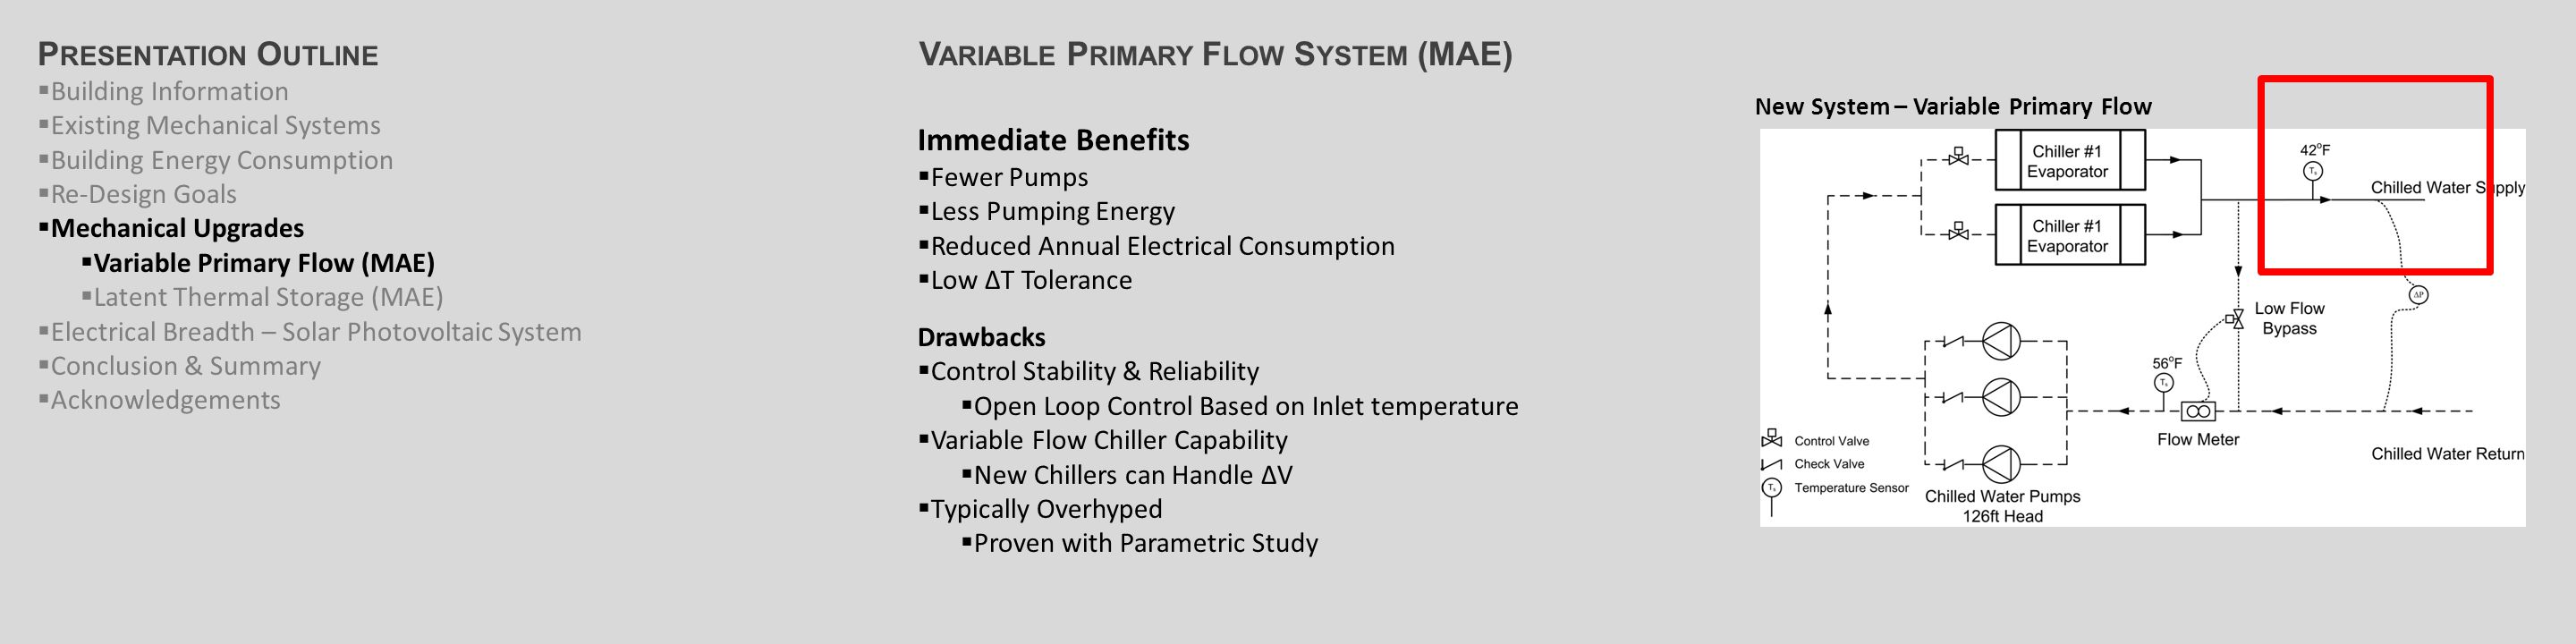 V ARIABLE P RIMARY F LOW S YSTEM (MAE) Immediate Benefits  Fewer Pumps  Less Pumping Energy  Reduced Annual Electrical Consumption  Low ΔT Tolerance Drawbacks  Control Stability & Reliability  Open Loop Control Based on Inlet temperature  Variable Flow Chiller Capability  New Chillers can Handle ΔV  Typically Overhyped  Proven with Parametric Study New System – Variable Primary Flow P RESENTATION O UTLINE  Building Information  Existing Mechanical Systems  Building Energy Consumption  Re-Design Goals  Mechanical Upgrades  Variable Primary Flow (MAE)  Latent Thermal Storage (MAE)  Electrical Breadth – Solar Photovoltaic System  Conclusion & Summary  Acknowledgements